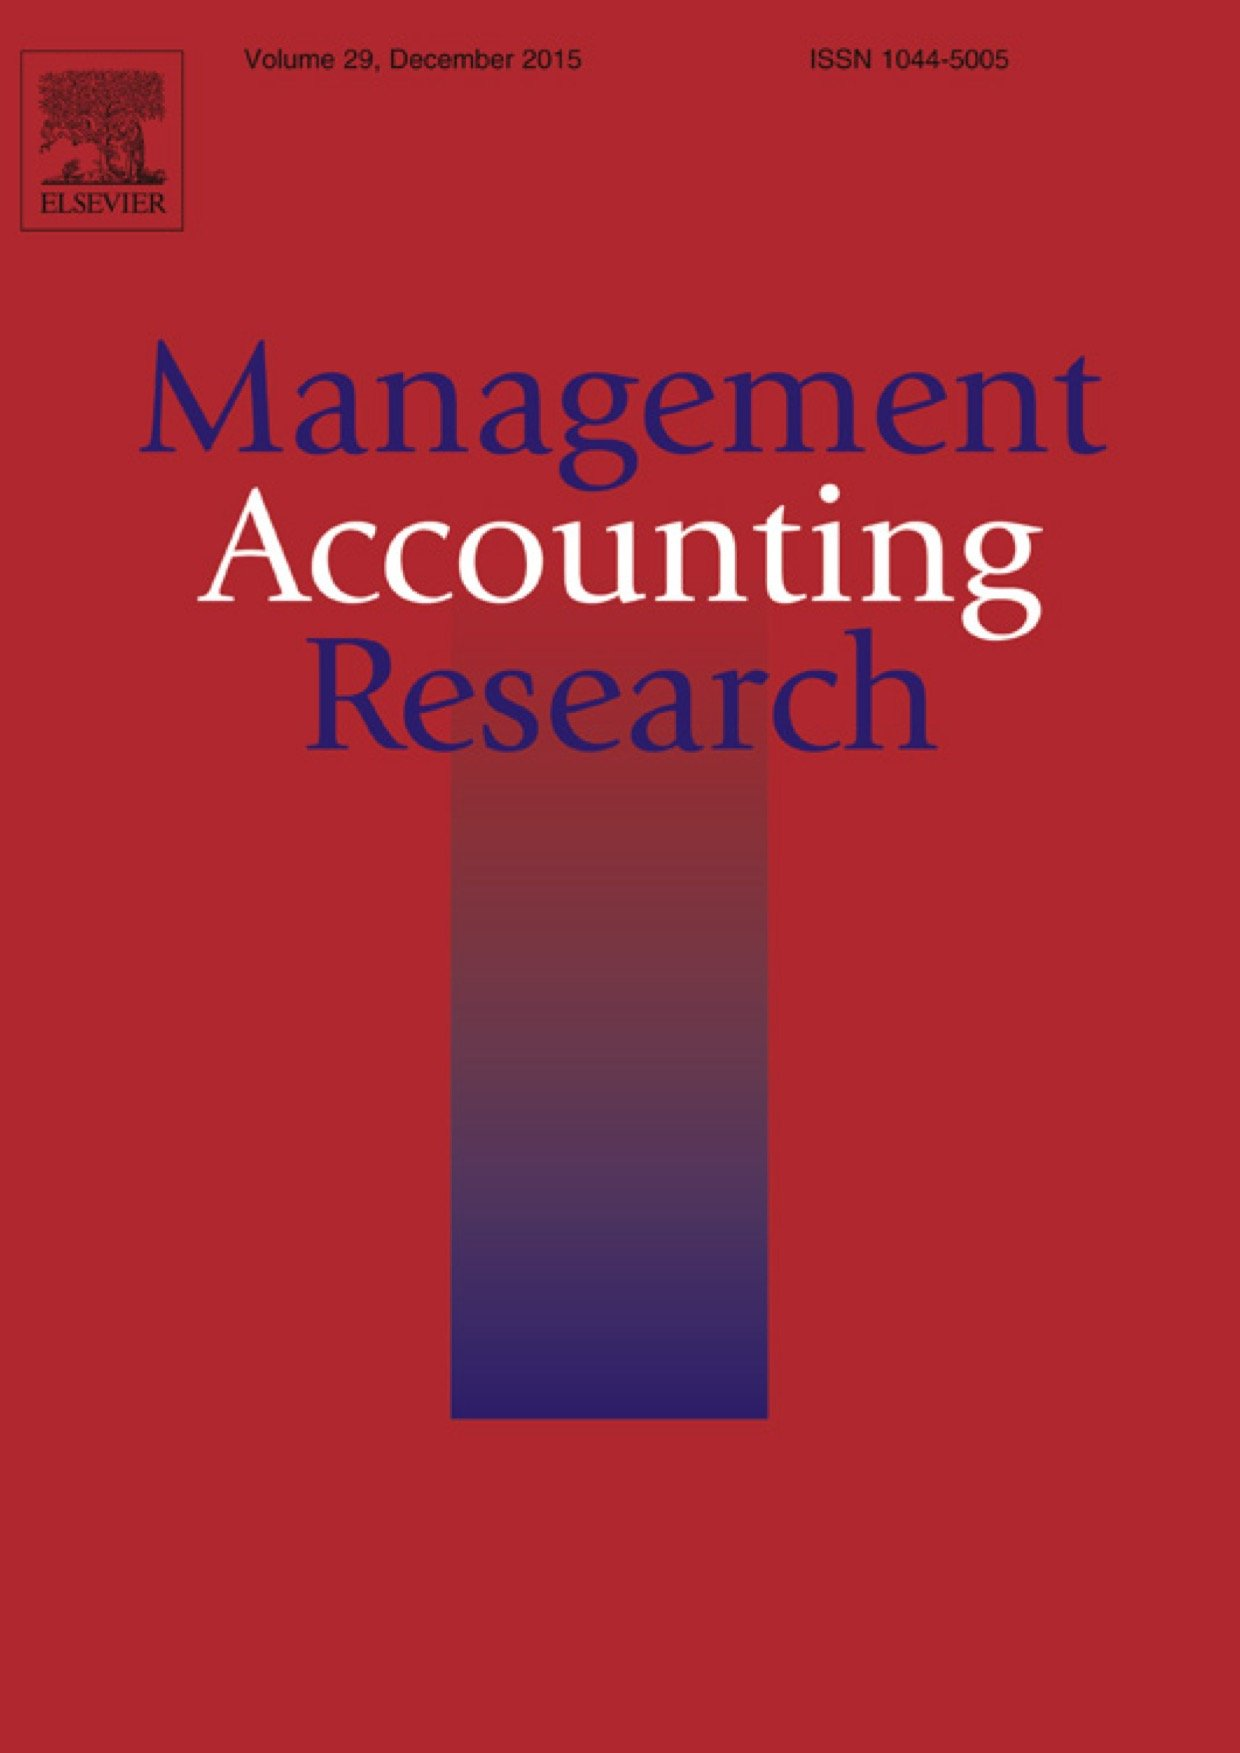 managerial midterm Ac505 managerial accounting midterm free research papers 61 – 90 free research papers regarding ac505 managerial accounting midterm for download.